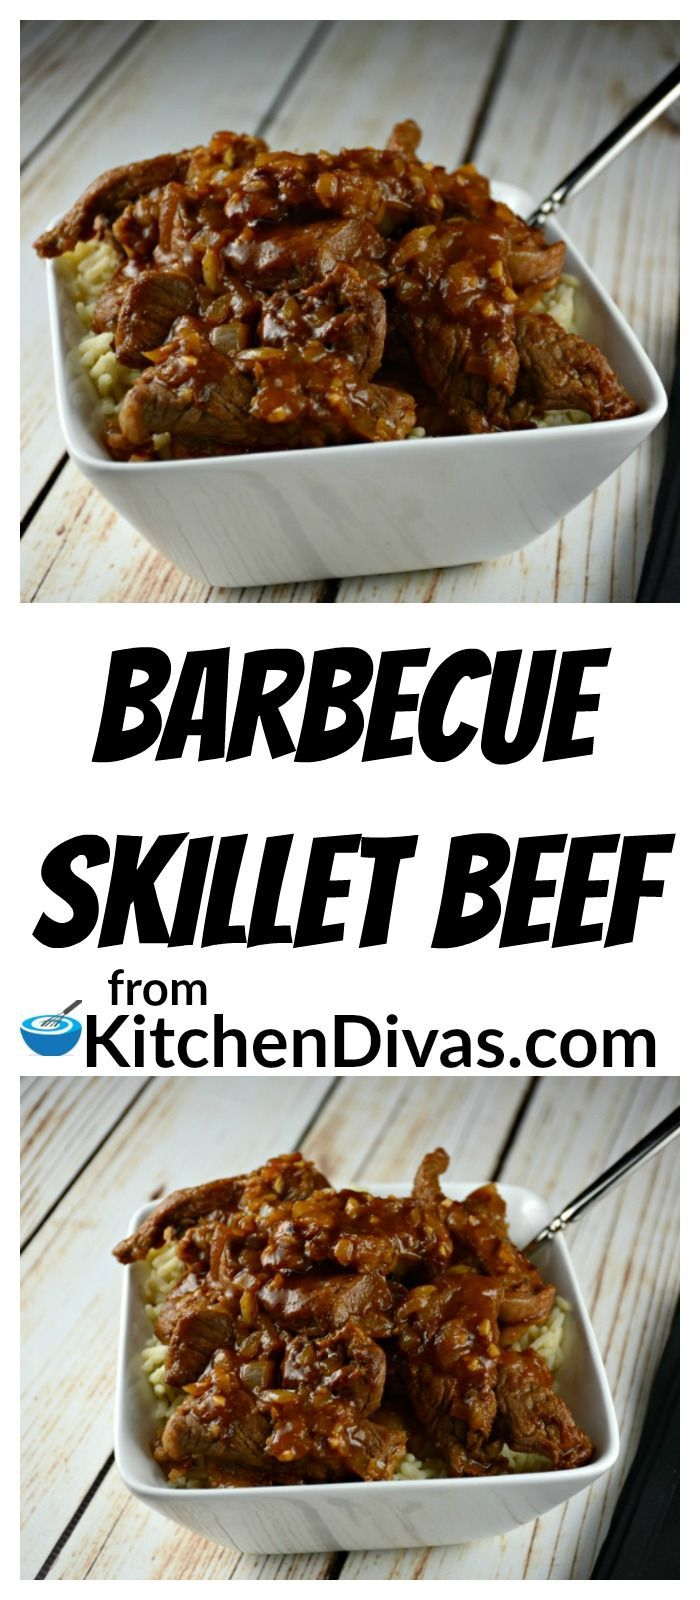 I love making this for dinner. Barbecue Skillet Beef is delicious. Love the gravy. Really love the gravy. I usually pick up a small roast on sale, cut it up and use it to make this weeknight winner! You can use any cut of steak too. I always figure why spend money unnecessarily!  Ken, my husband, loves hearing me say that! Served with rice or mashed potatoes this dish will not disappoint!